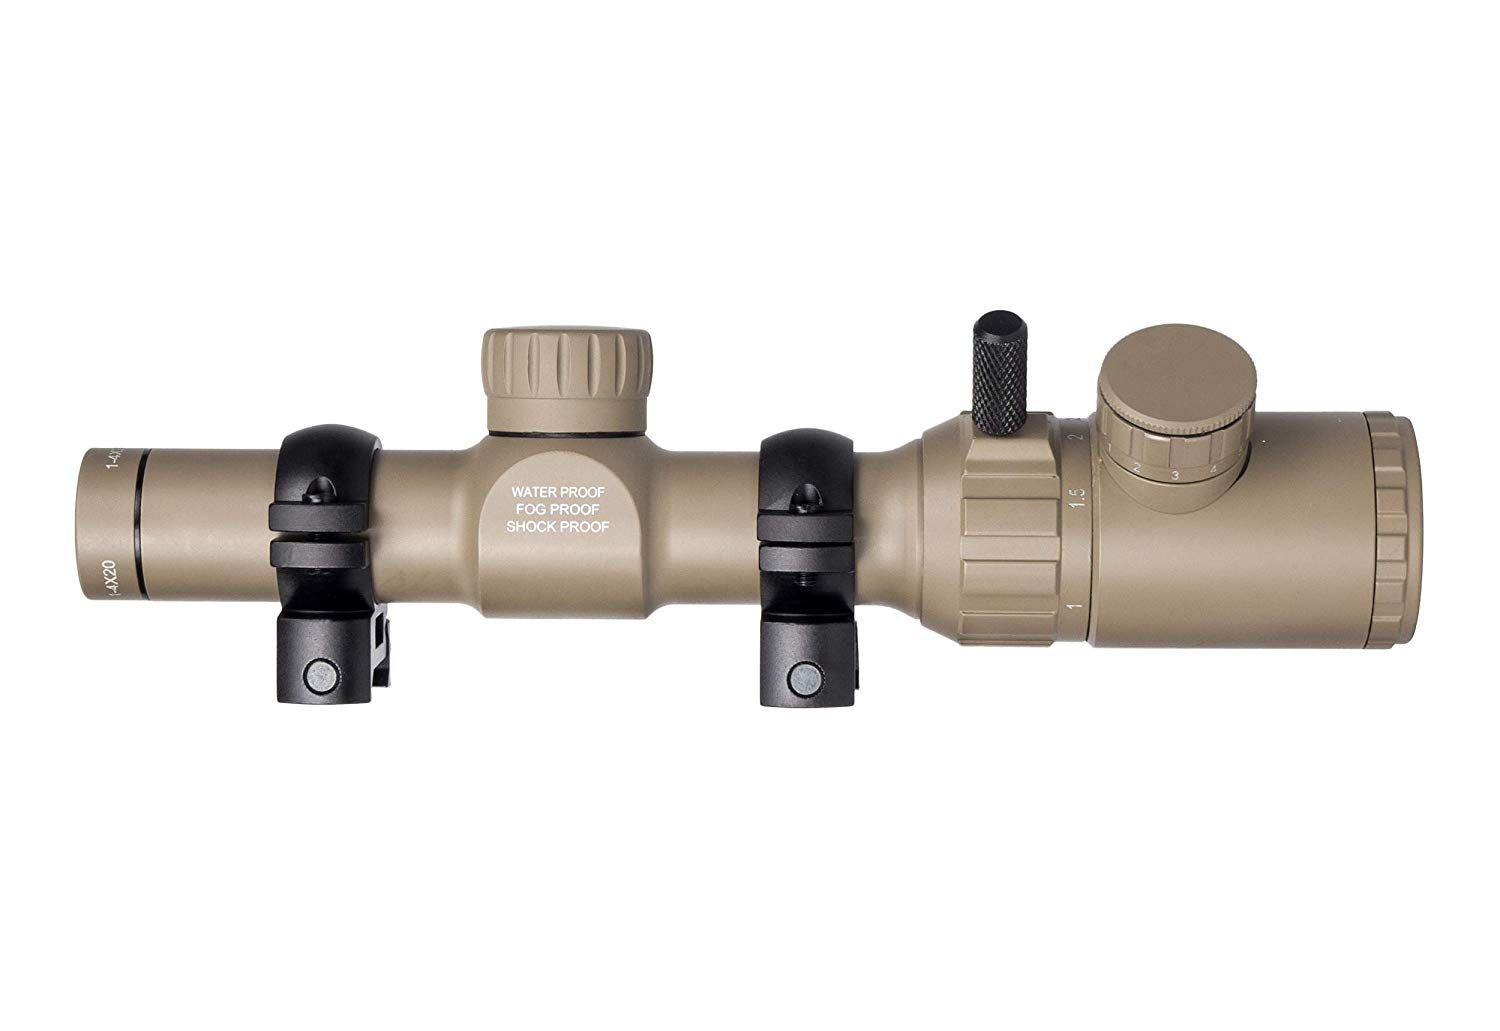 Monstrum 1-4x20 Rifle Scope with Rangefinder Reticle w/ High Profile Scope  Rings Flat Dark Earth Scope NEW LOOK! Factory Warranty! IN the Original